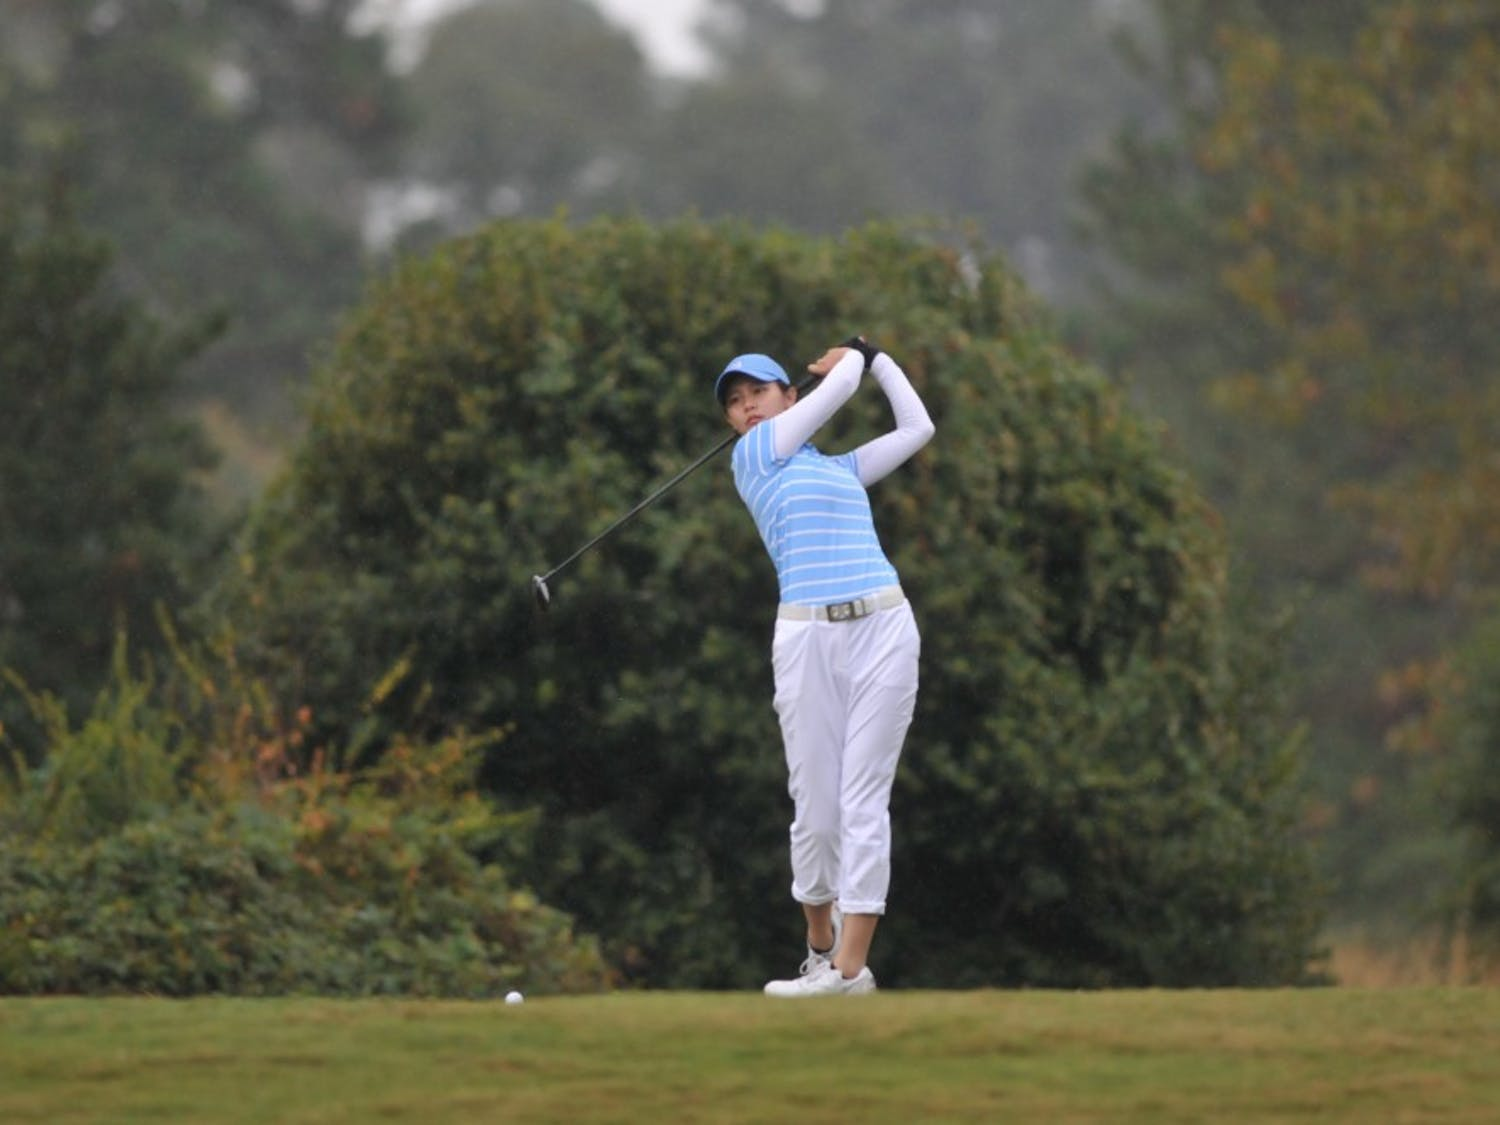 UNC sophomore Jennifer Zhou takes a practice swing at the Ruth's Chris Tar Heel Invitational on Sunday, Oct. 13, 2019. UNC placed sixth out of 18 teams at the three day tournament. Zhou finished 5th place overall, her second best in her collegiate career.